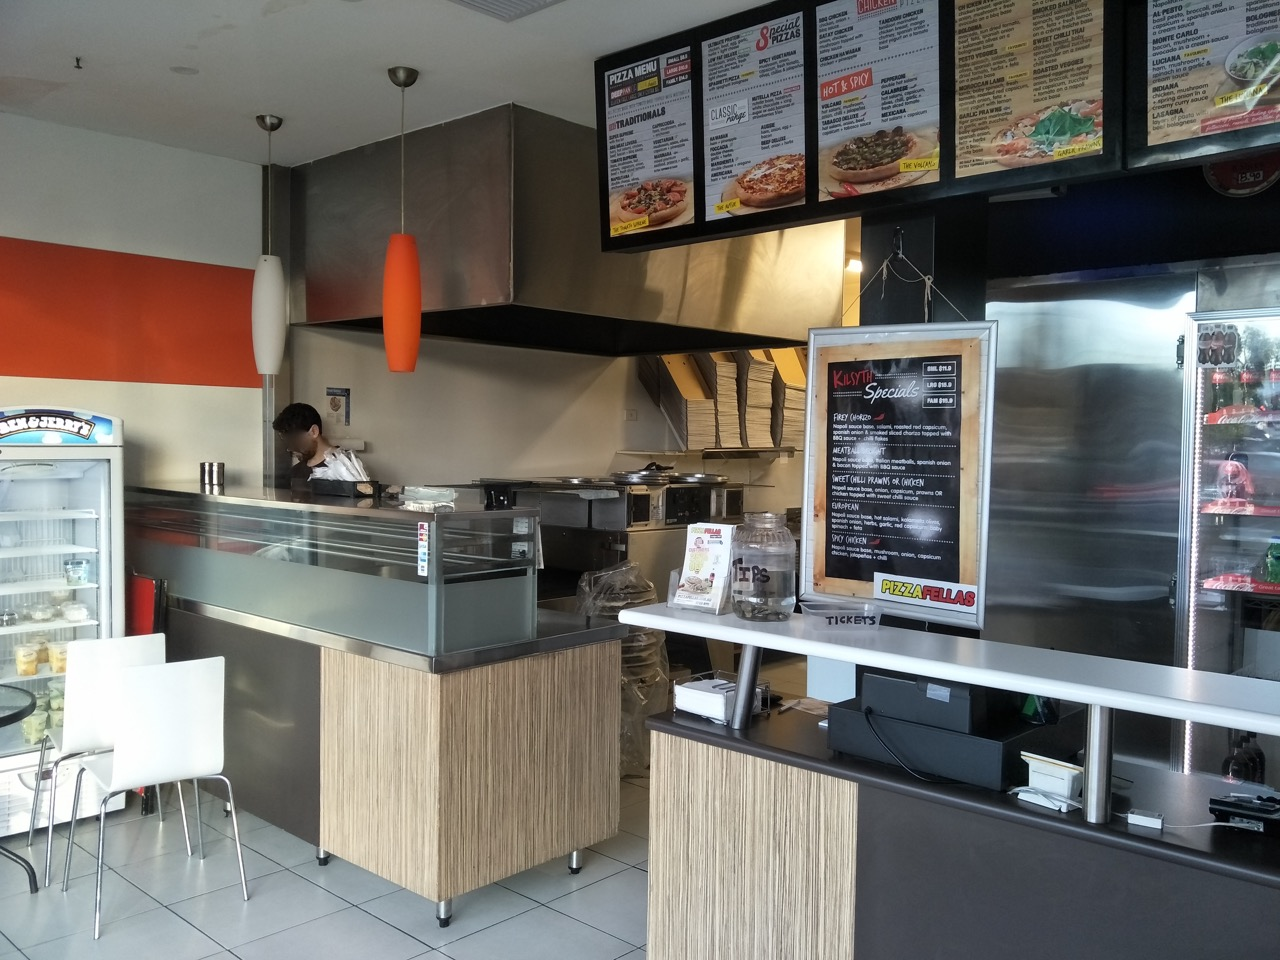 Pizza Shop for Sale, Under Management, great location, selling under set up cost